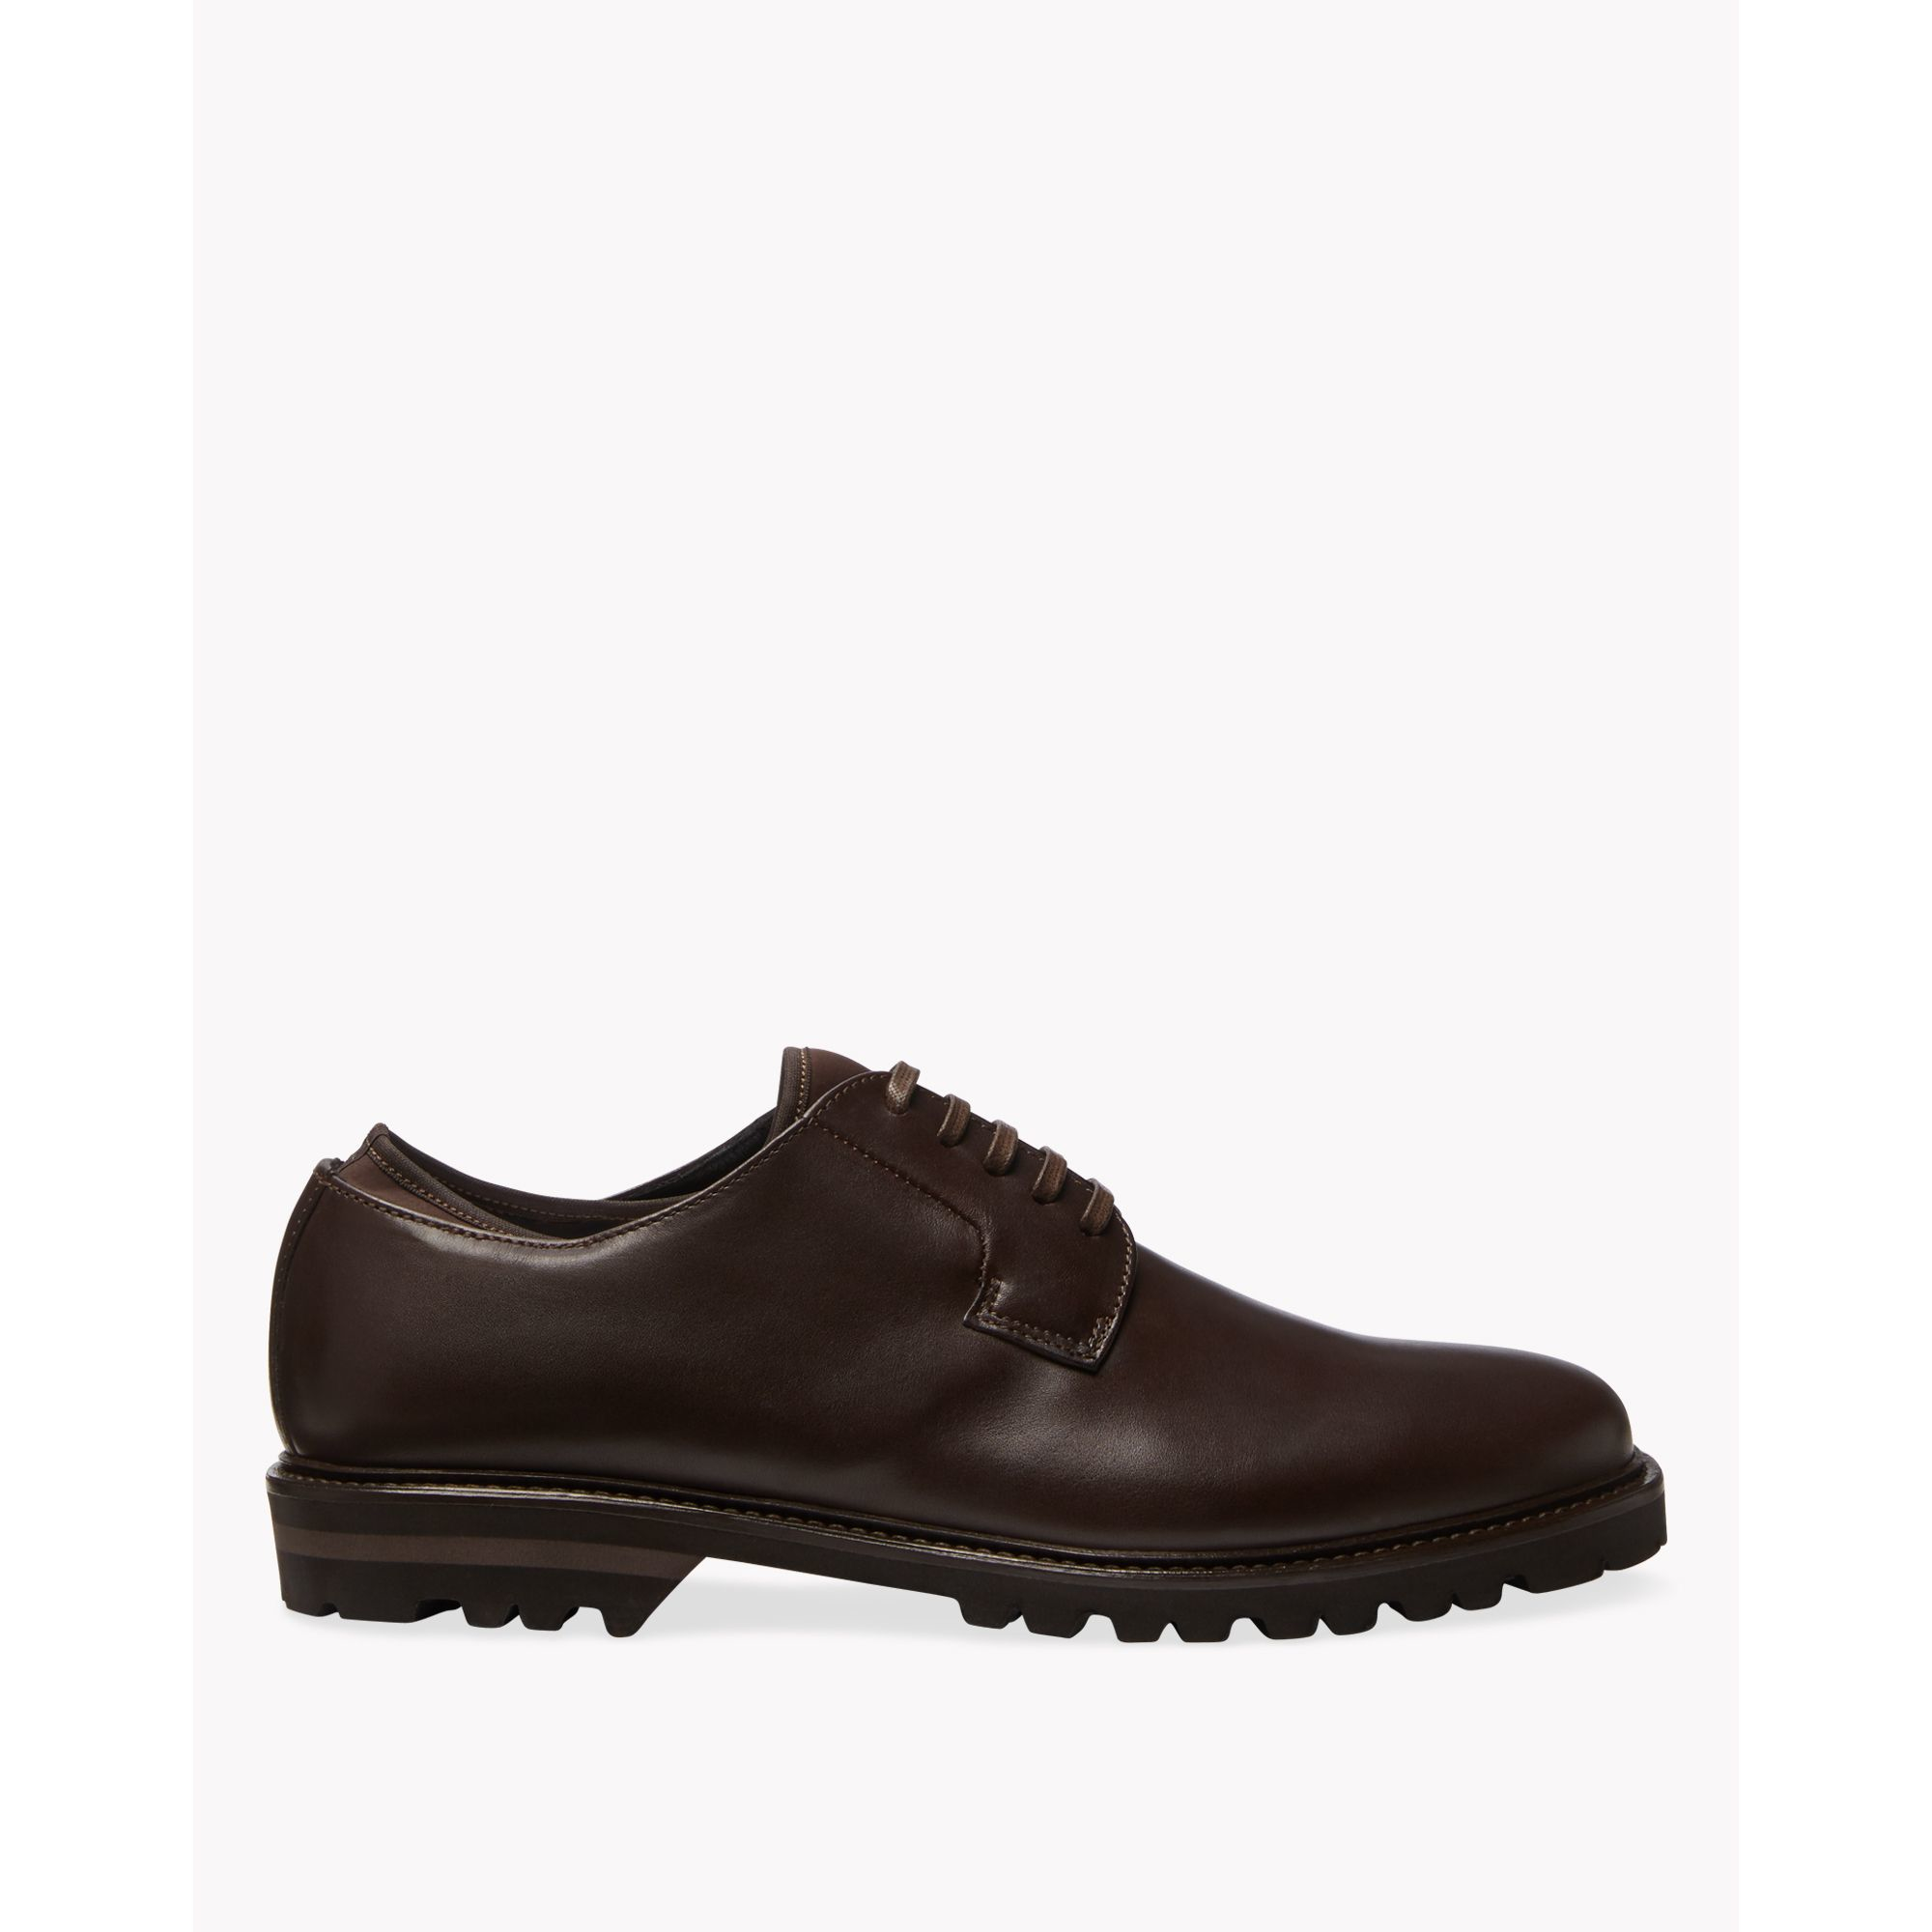 Theory Shoes